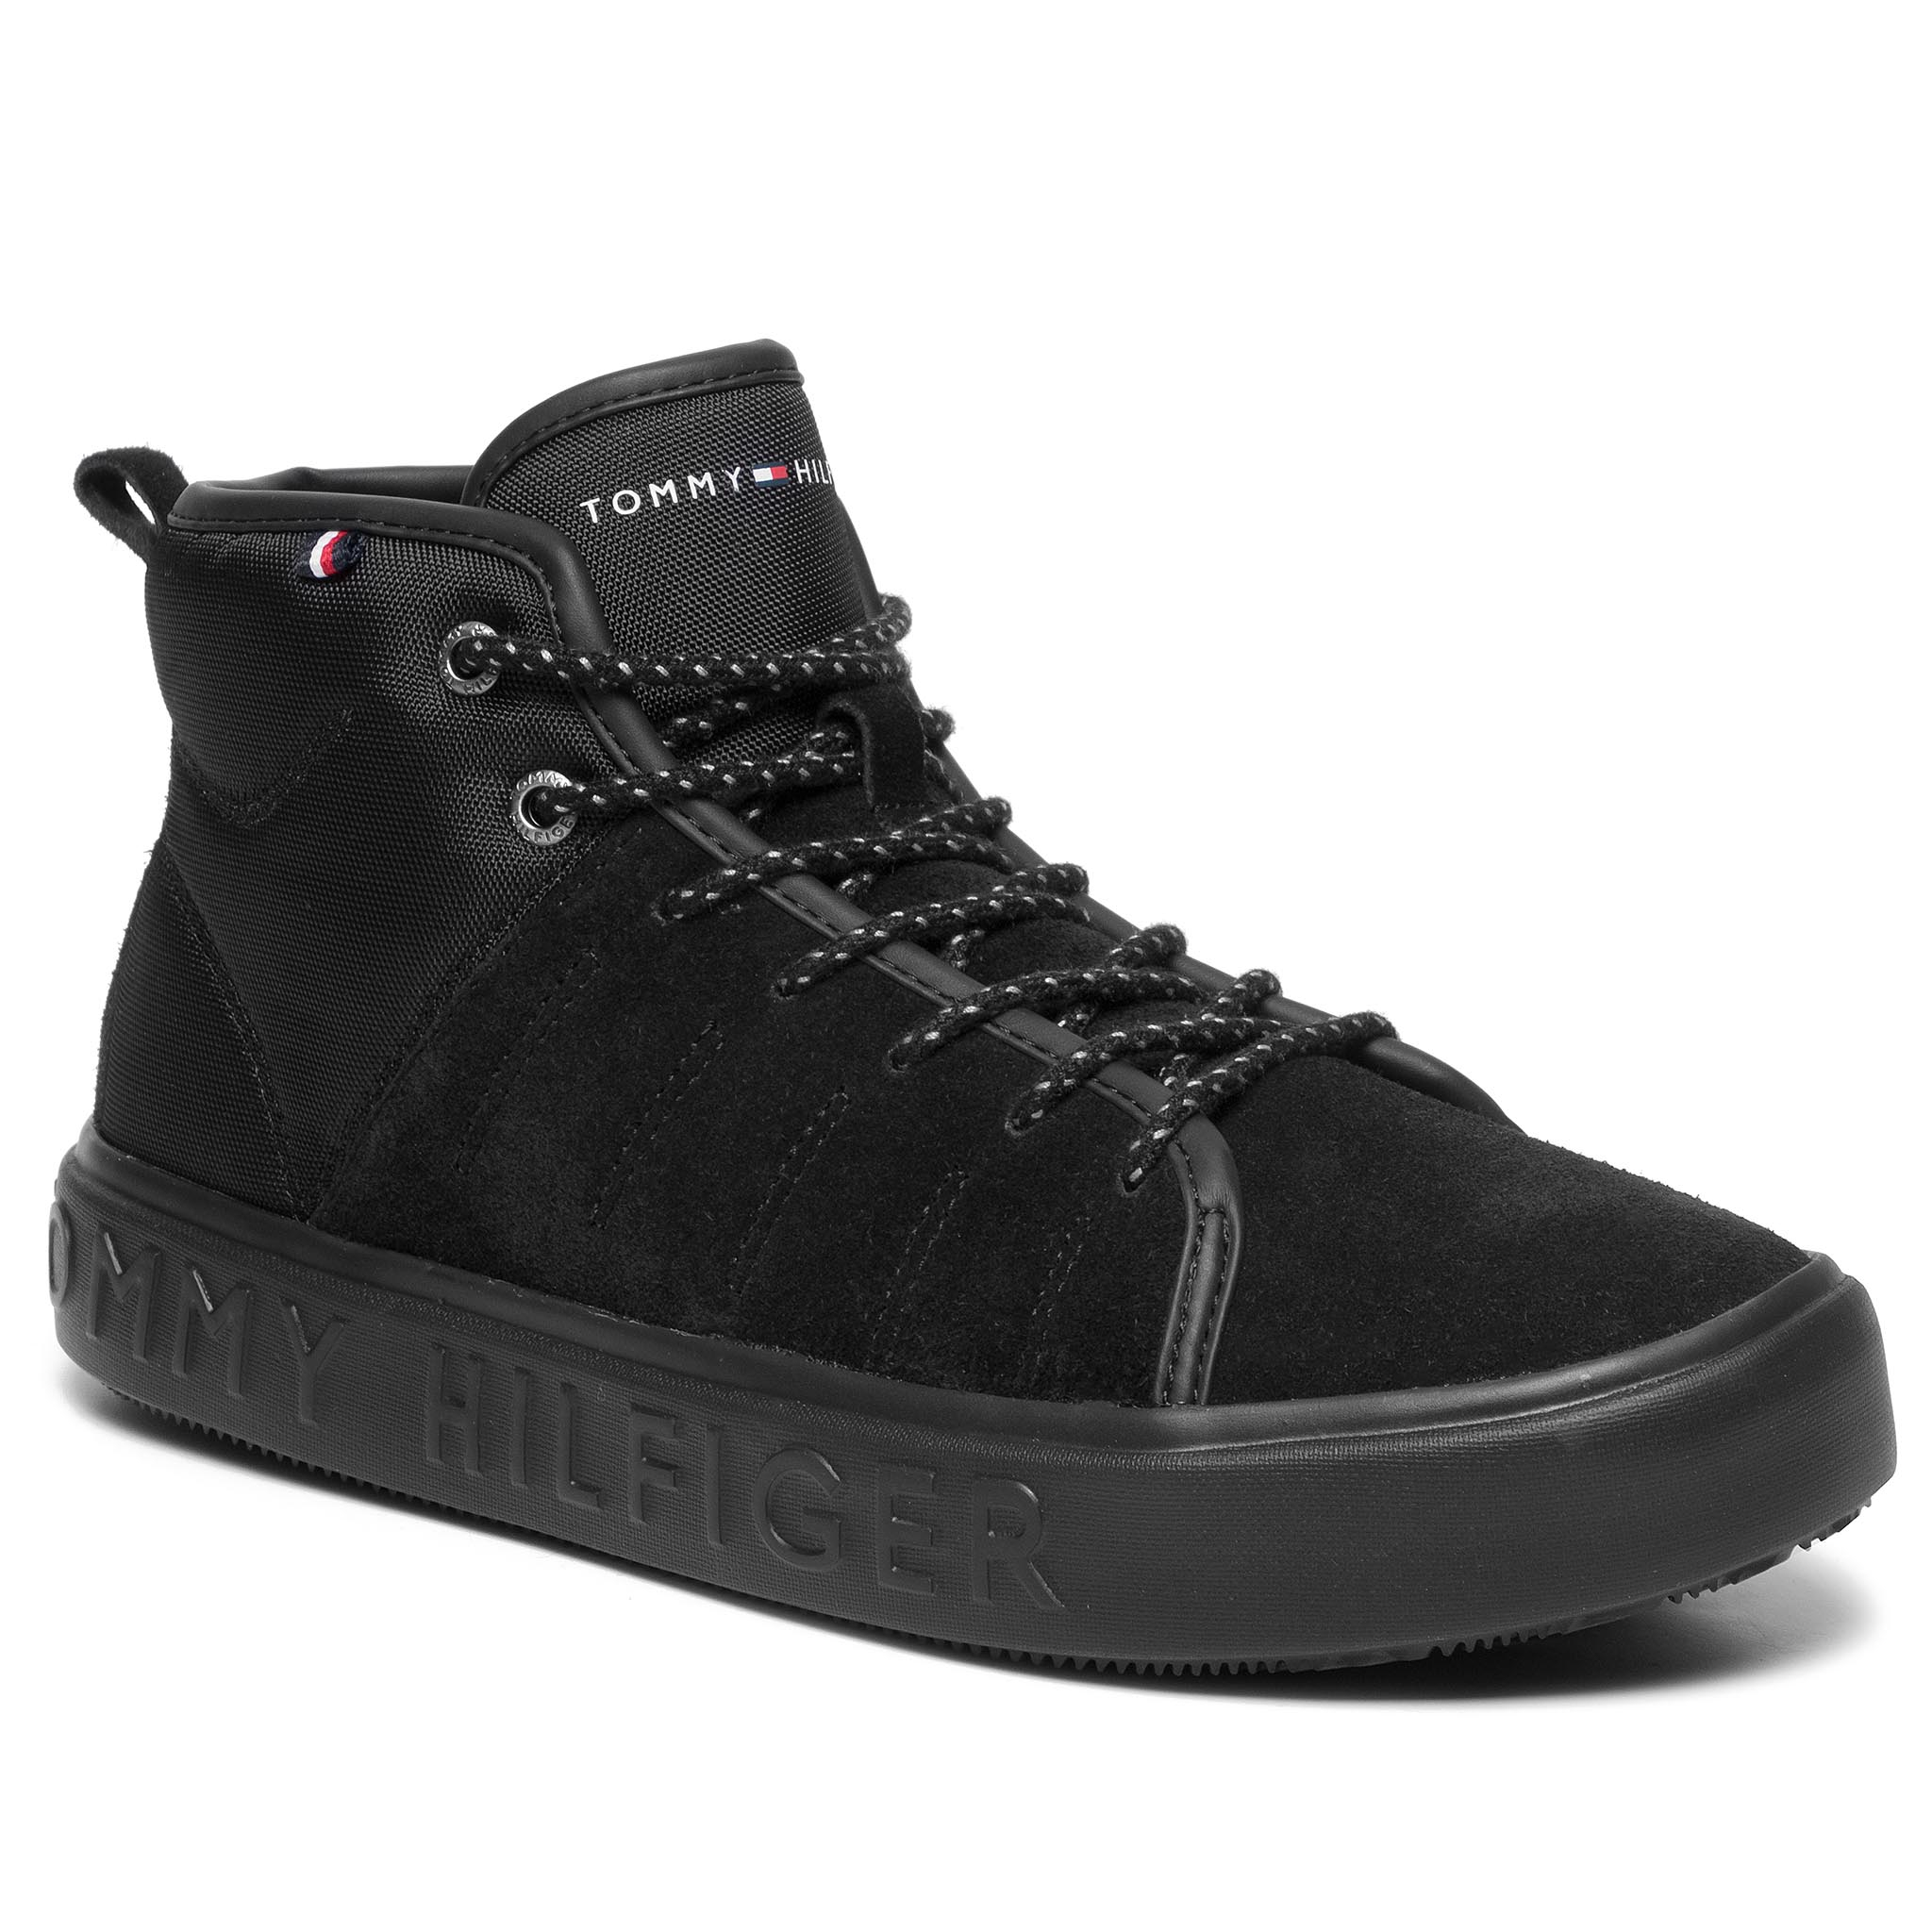 Sneakers TOMMY HILFIGER - Corporate Branded Cupsole High FM0FM02393 Black 990